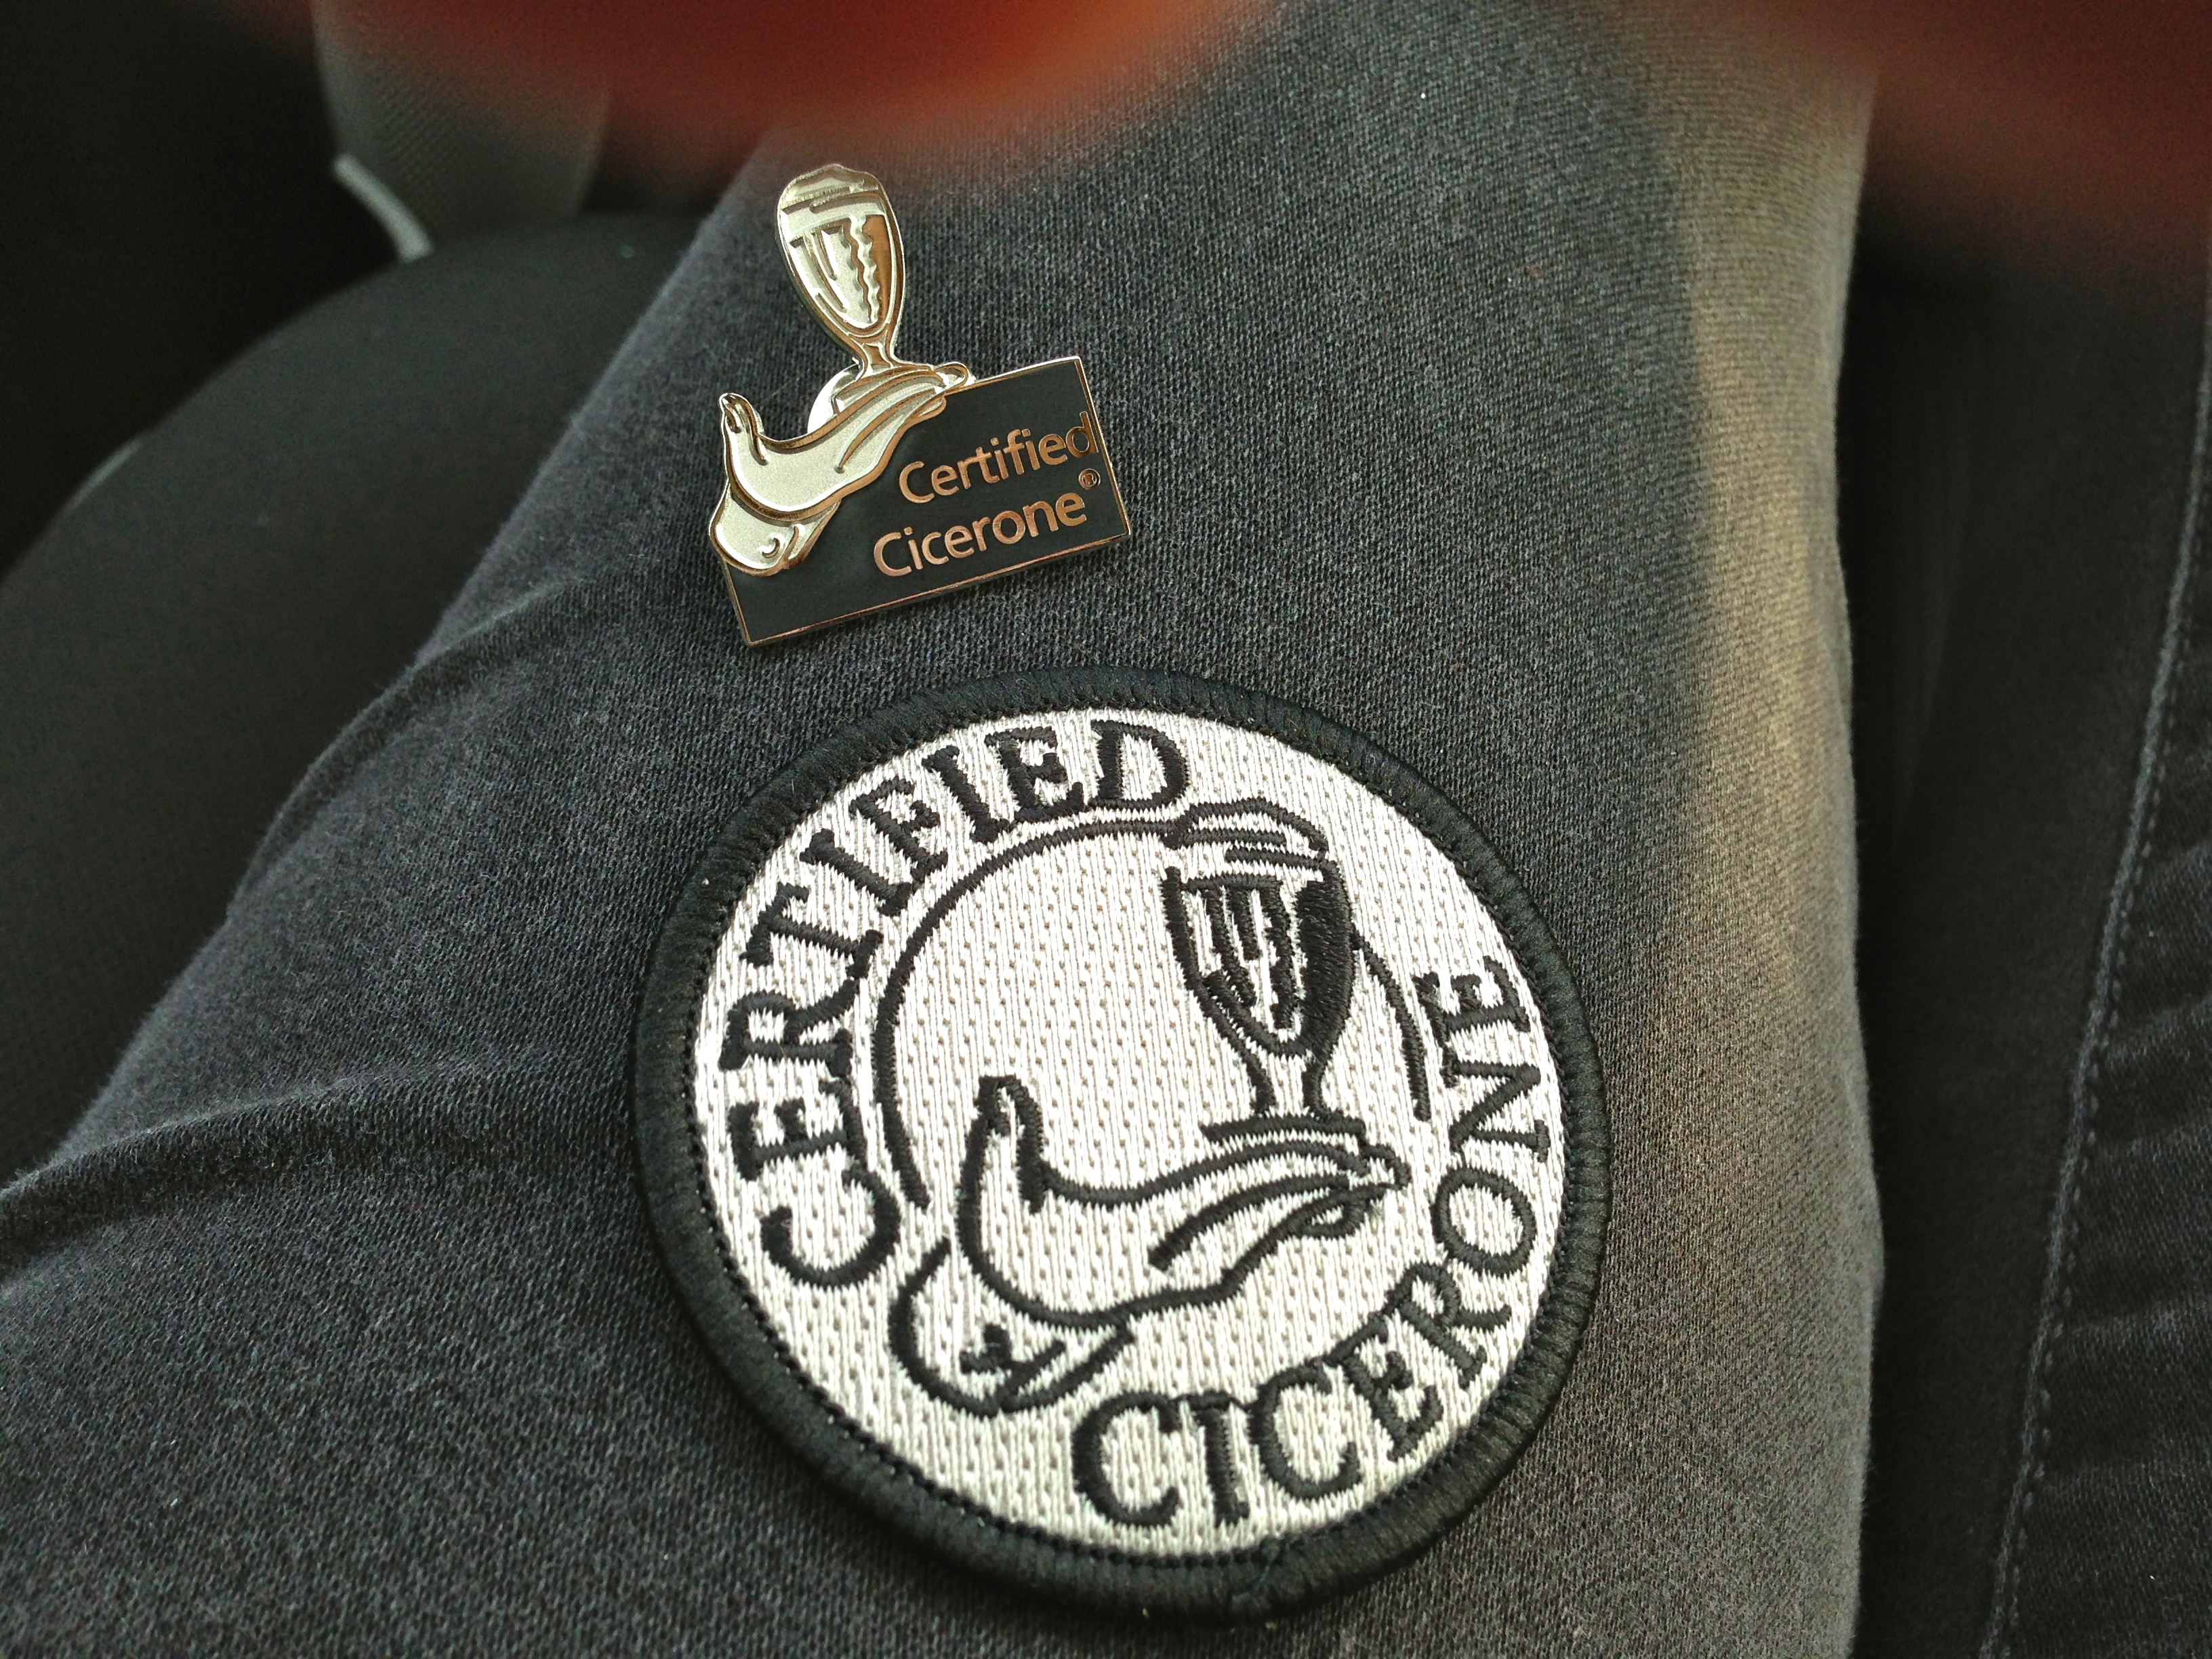 Certified cicerone bites n brews my certified cicerone pin and badge came in the mail yesterday sending me off into another frenzied hour of joy xflitez Image collections